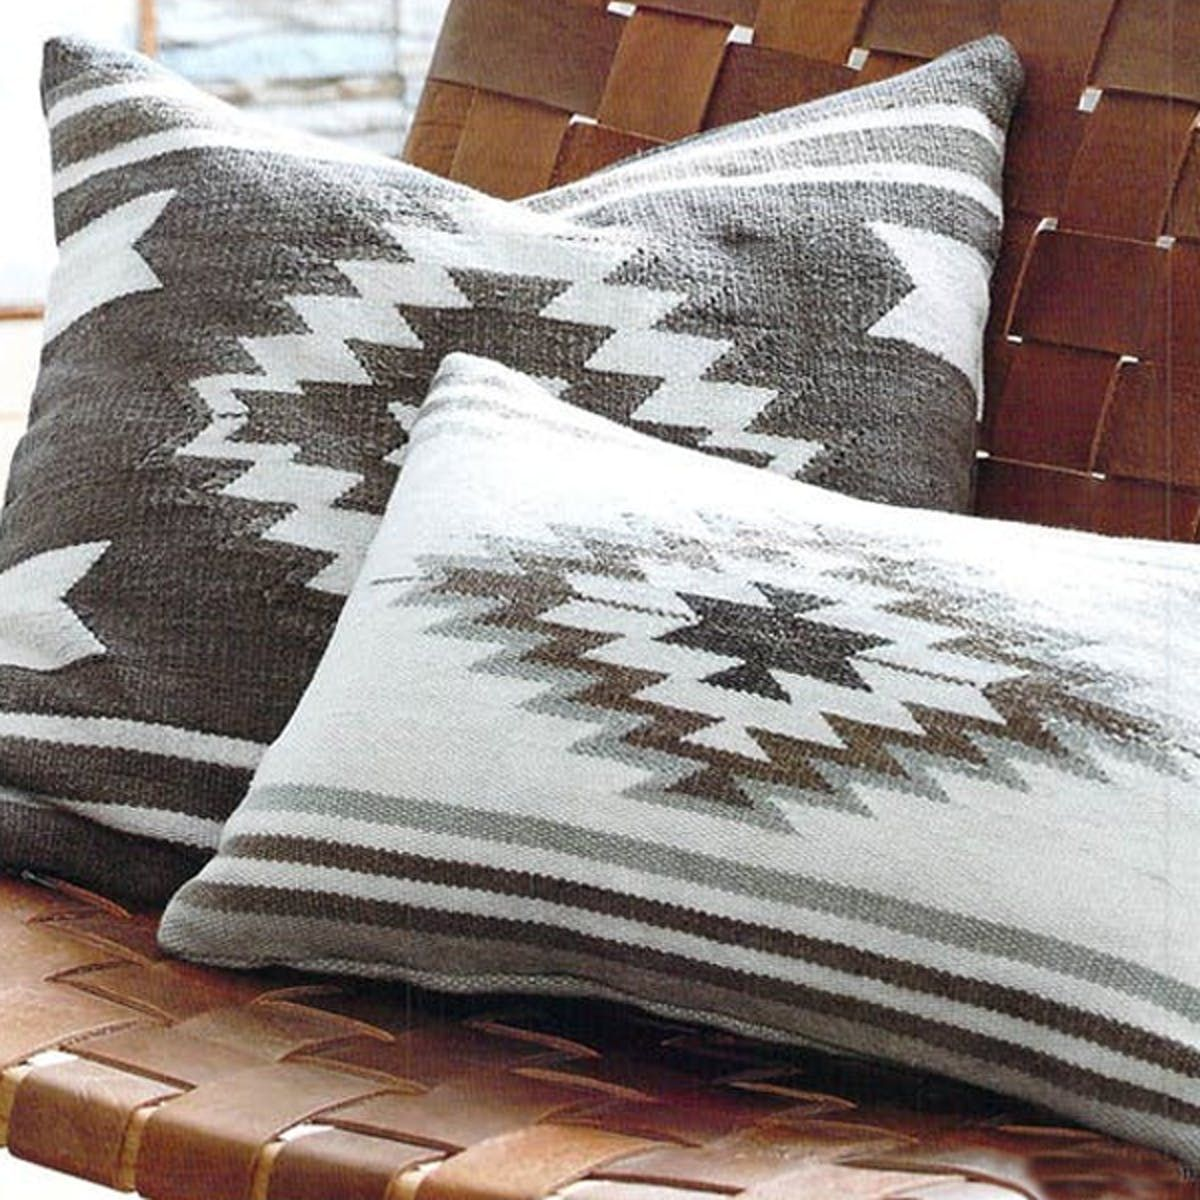 Roost Durango Pillow Covers Pillow Inserts Modish Store Home Decor Online Tribal Print